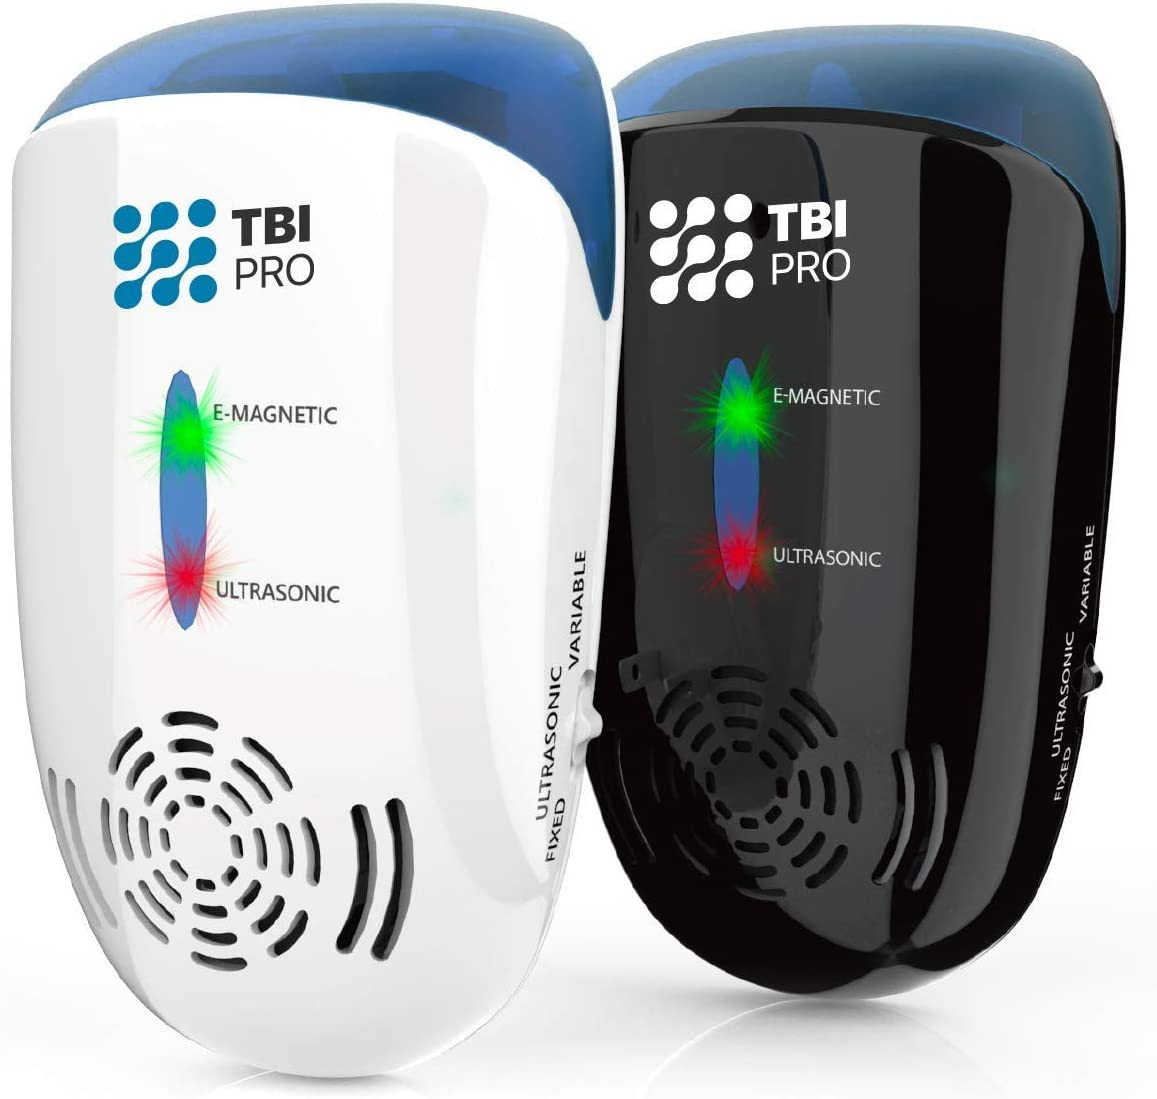 TBI Pro Ultrasonic Pest Repeller Wall Plug-in - Electromagnetic & Ionic Indoor Repellent Anti Mouse, Rats, Roach, Ants, Mosquito, Cockroach Control - Safe Quiet Electronic Device -4000 Sq.ft (2-Pack) : Garden & Outdoor